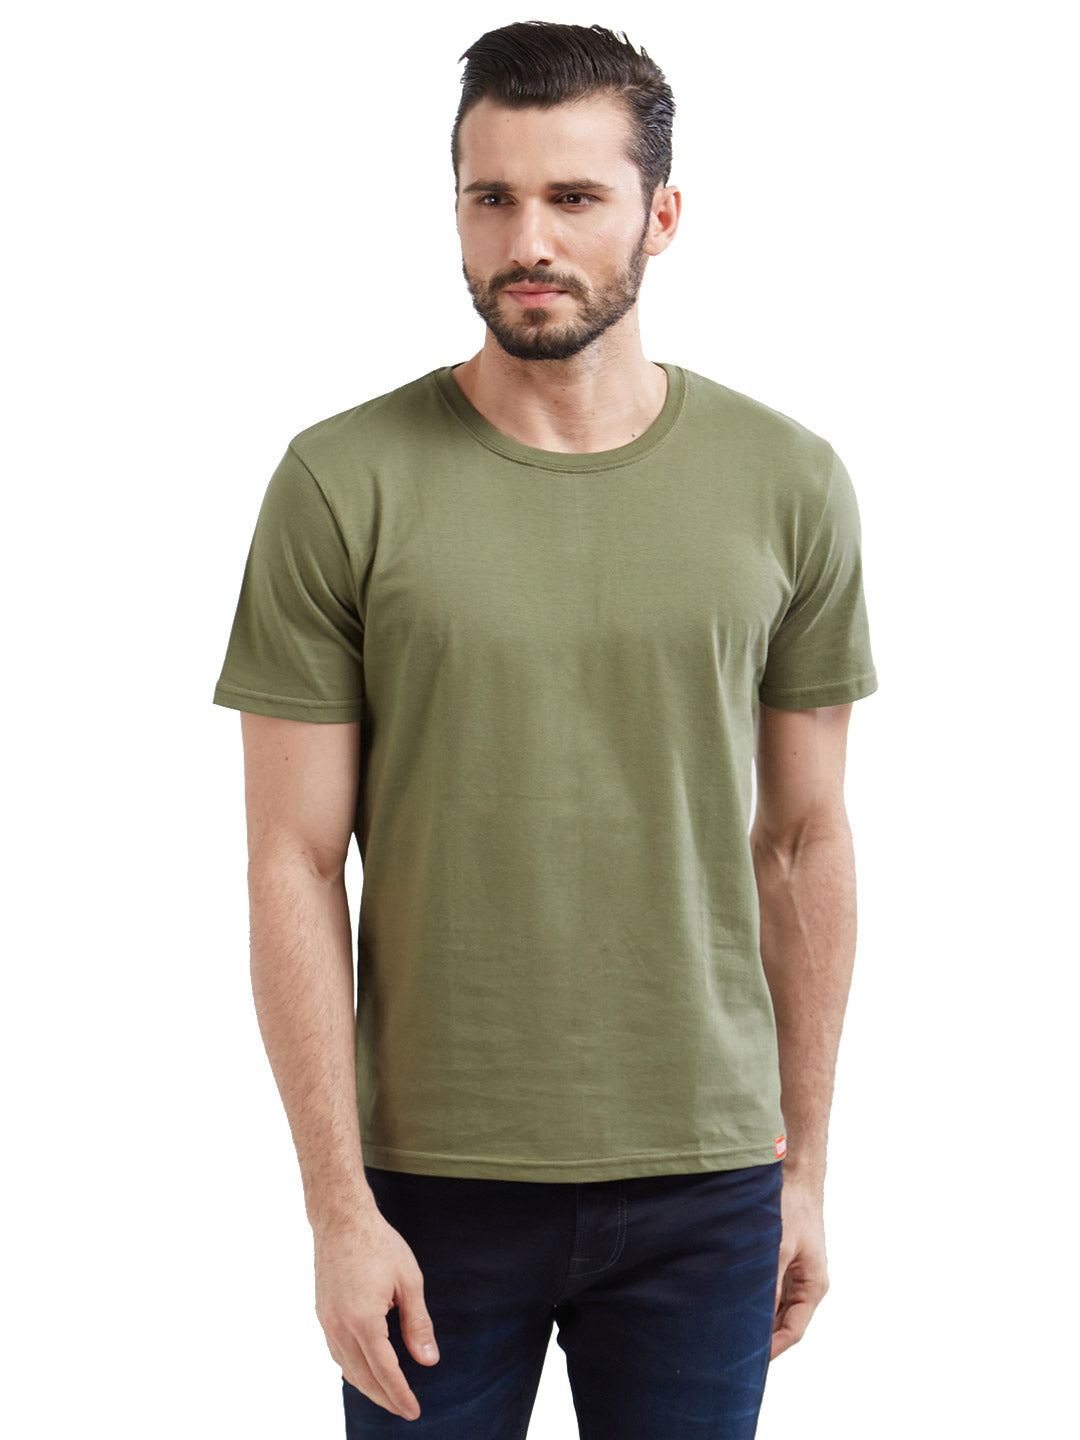 Solid Mens Army T Shirts  62979c8be12c